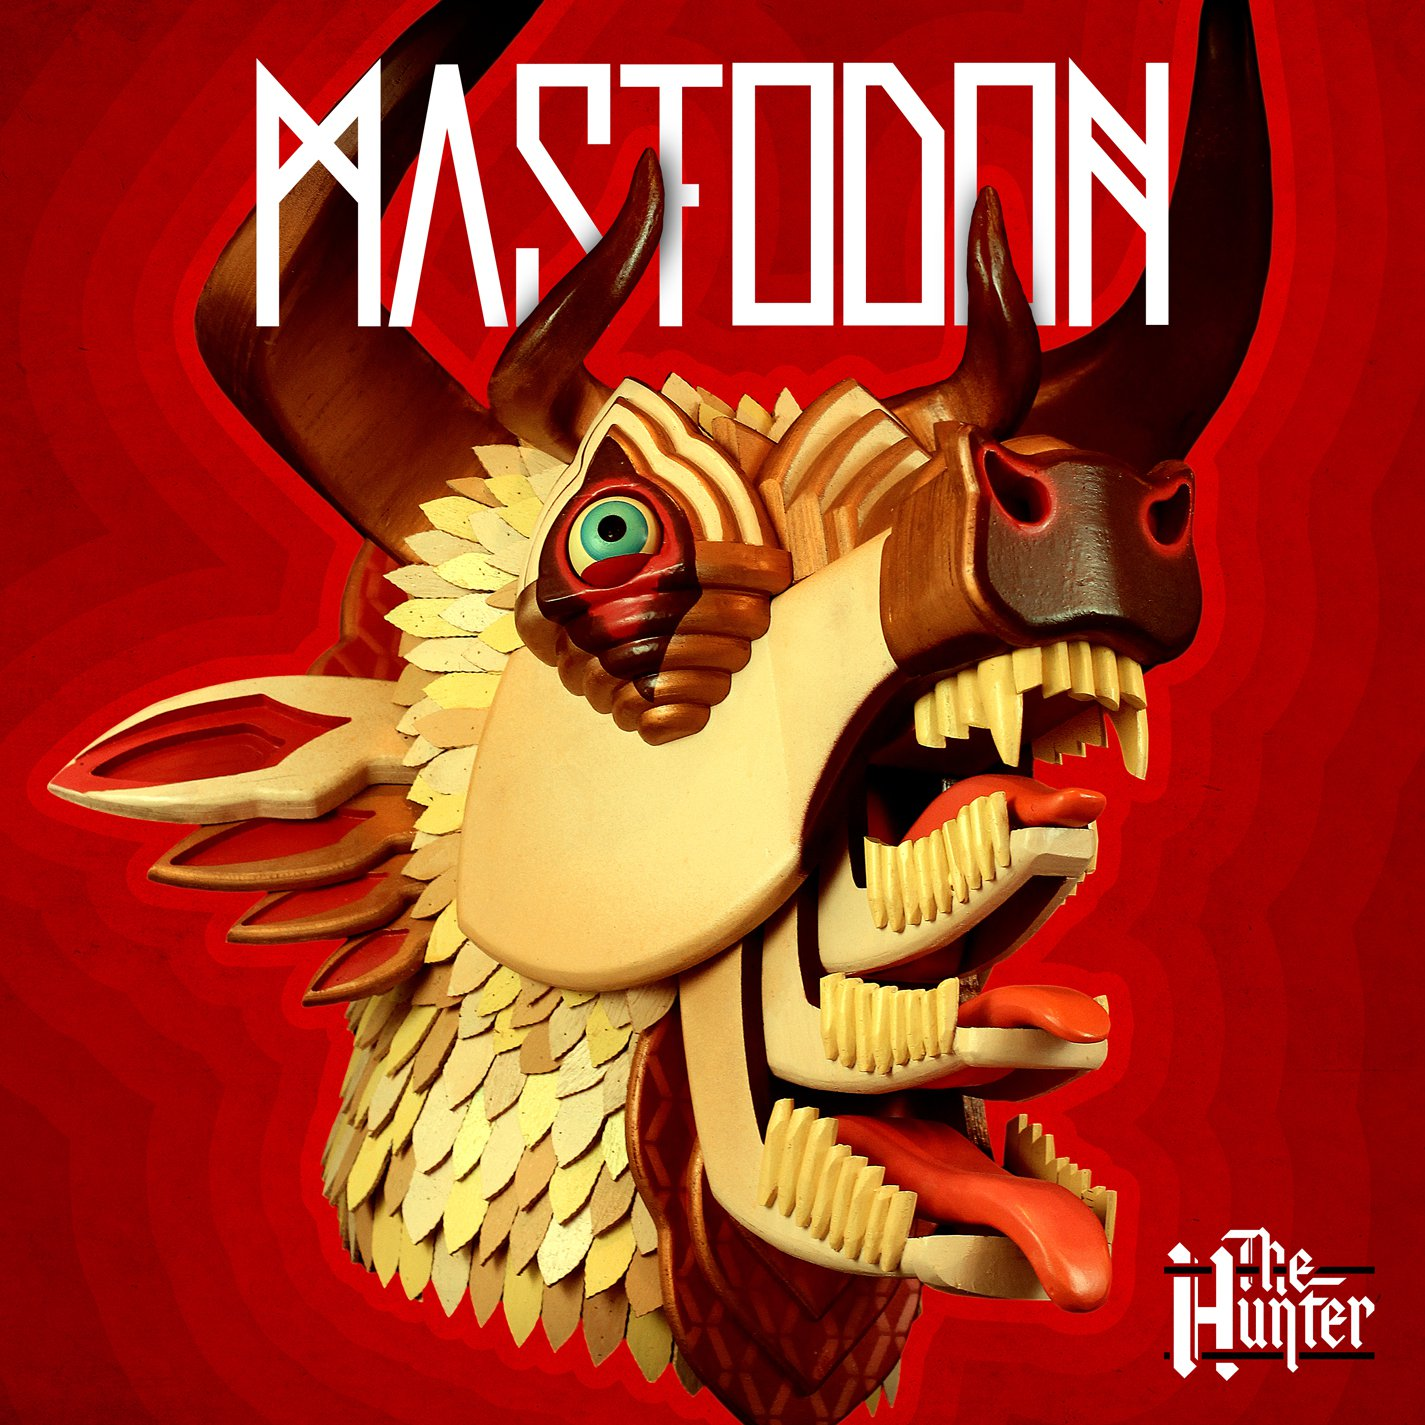 Mastodon-The Hunter album cover